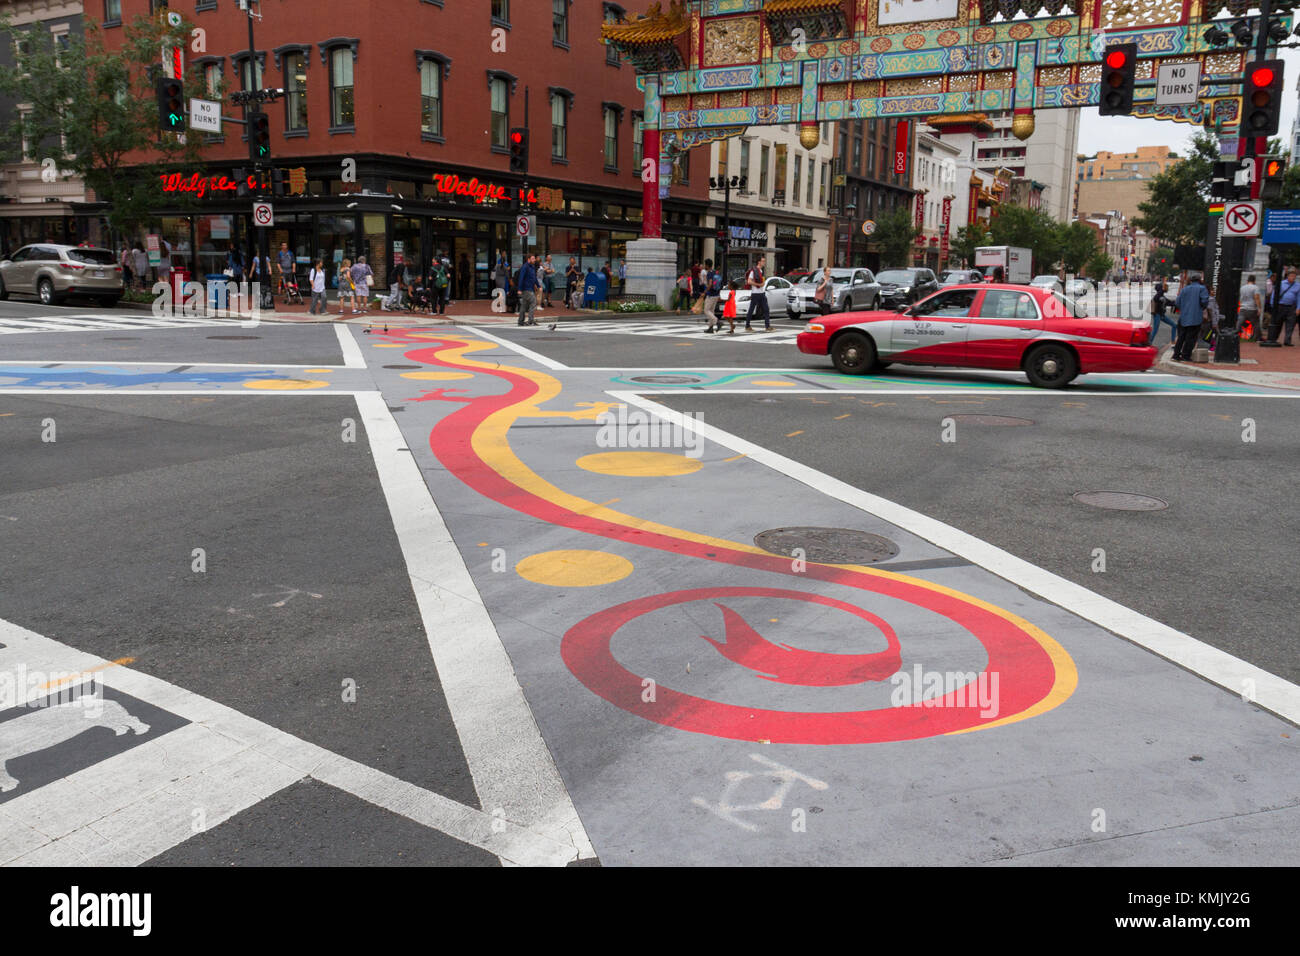 Colourful road crossing in front of the Friendship Arch in Chinatown, Washington DC, United States. - Stock Image